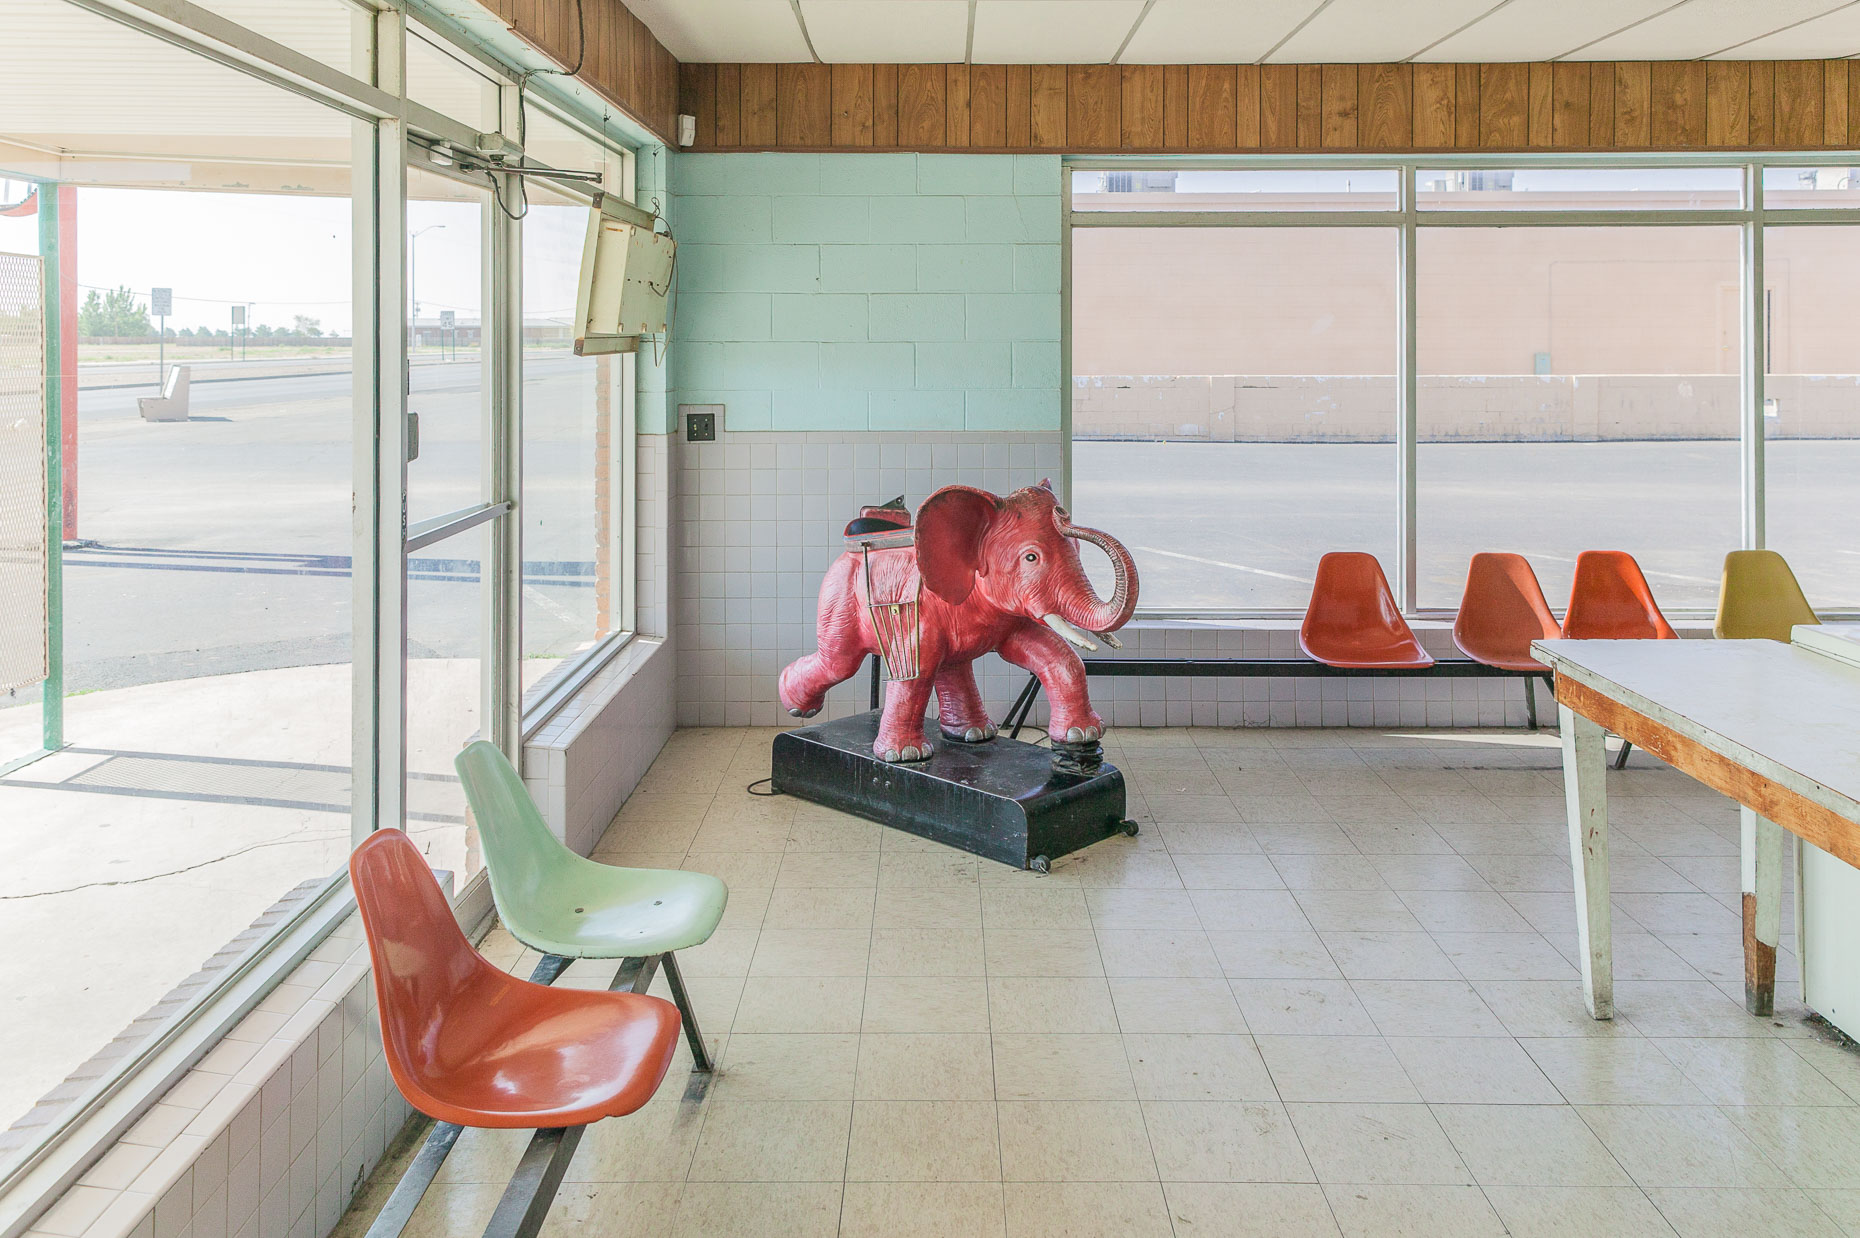 Pink elephant coin operated ride inside laundromat in Roswell, New Mexico by David Zaitz